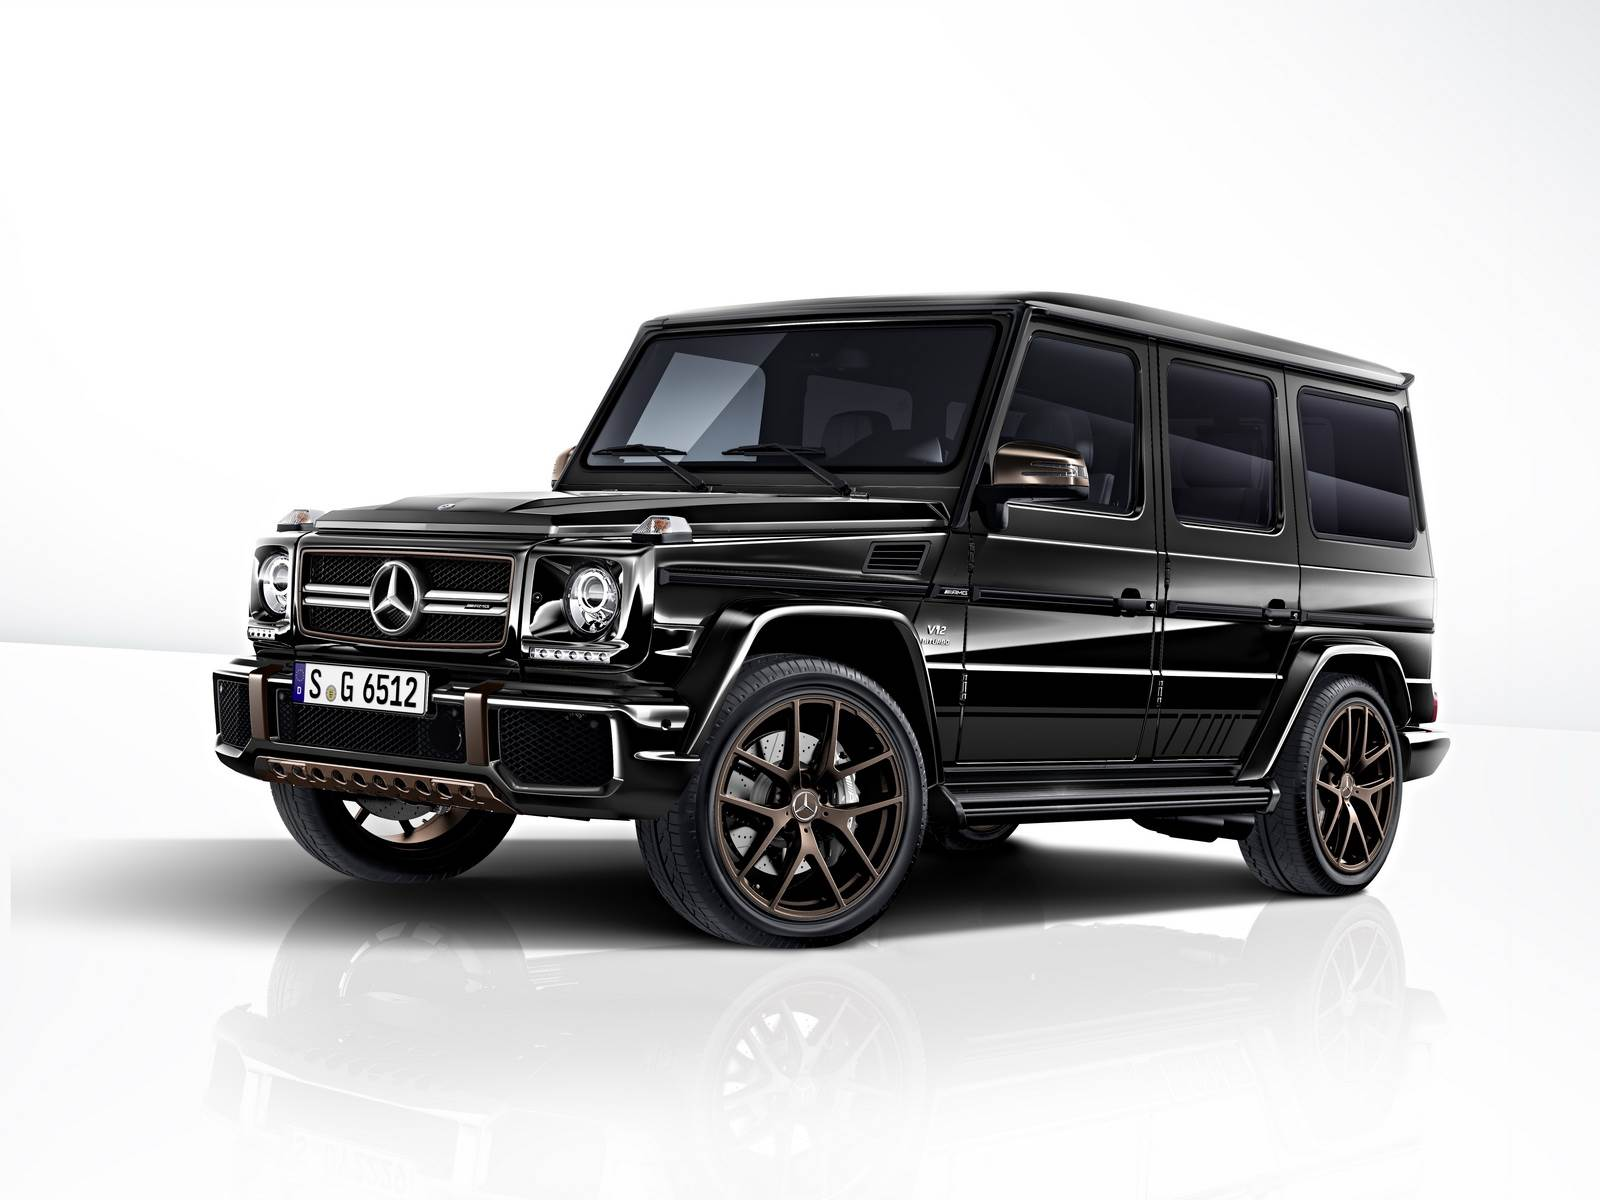 Mercedes-AMG G 65 Final Edition image gallery